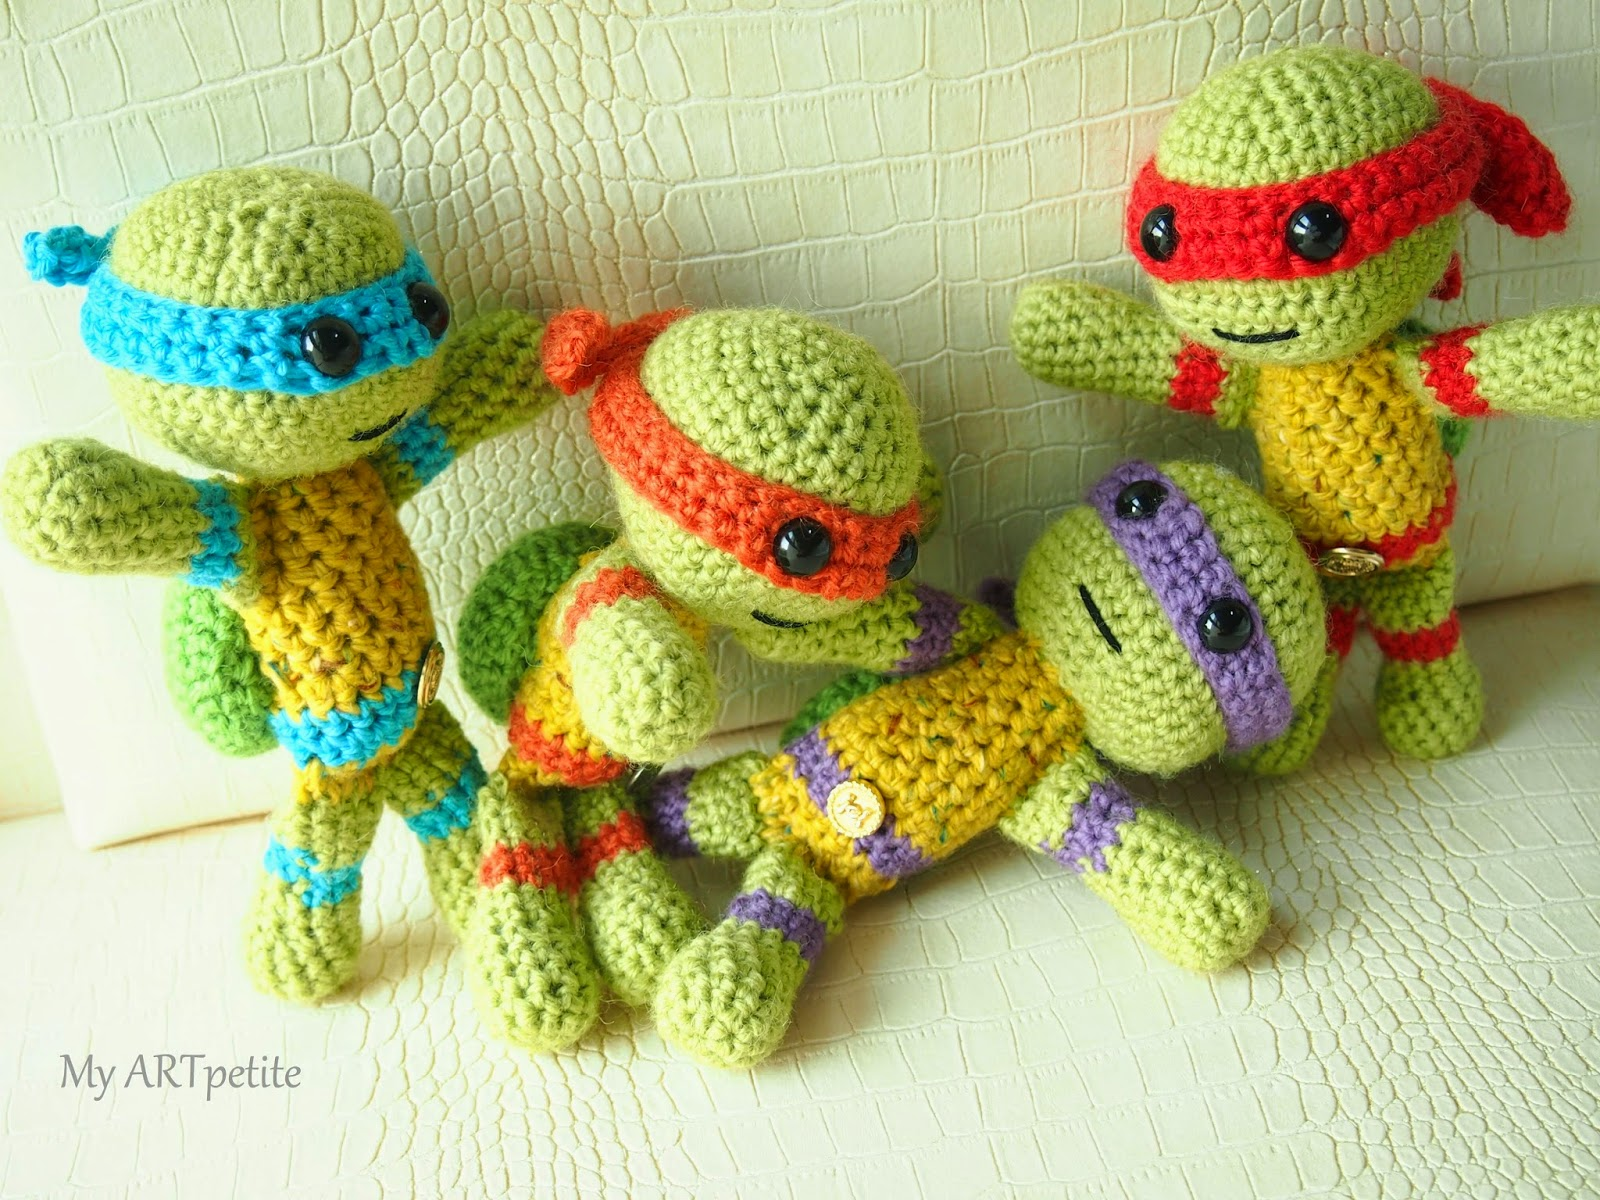 Crochet Ninja Turtle : My ARTpetite: Free Crochet Pattern: Teenage Mutant Ninja Turtles